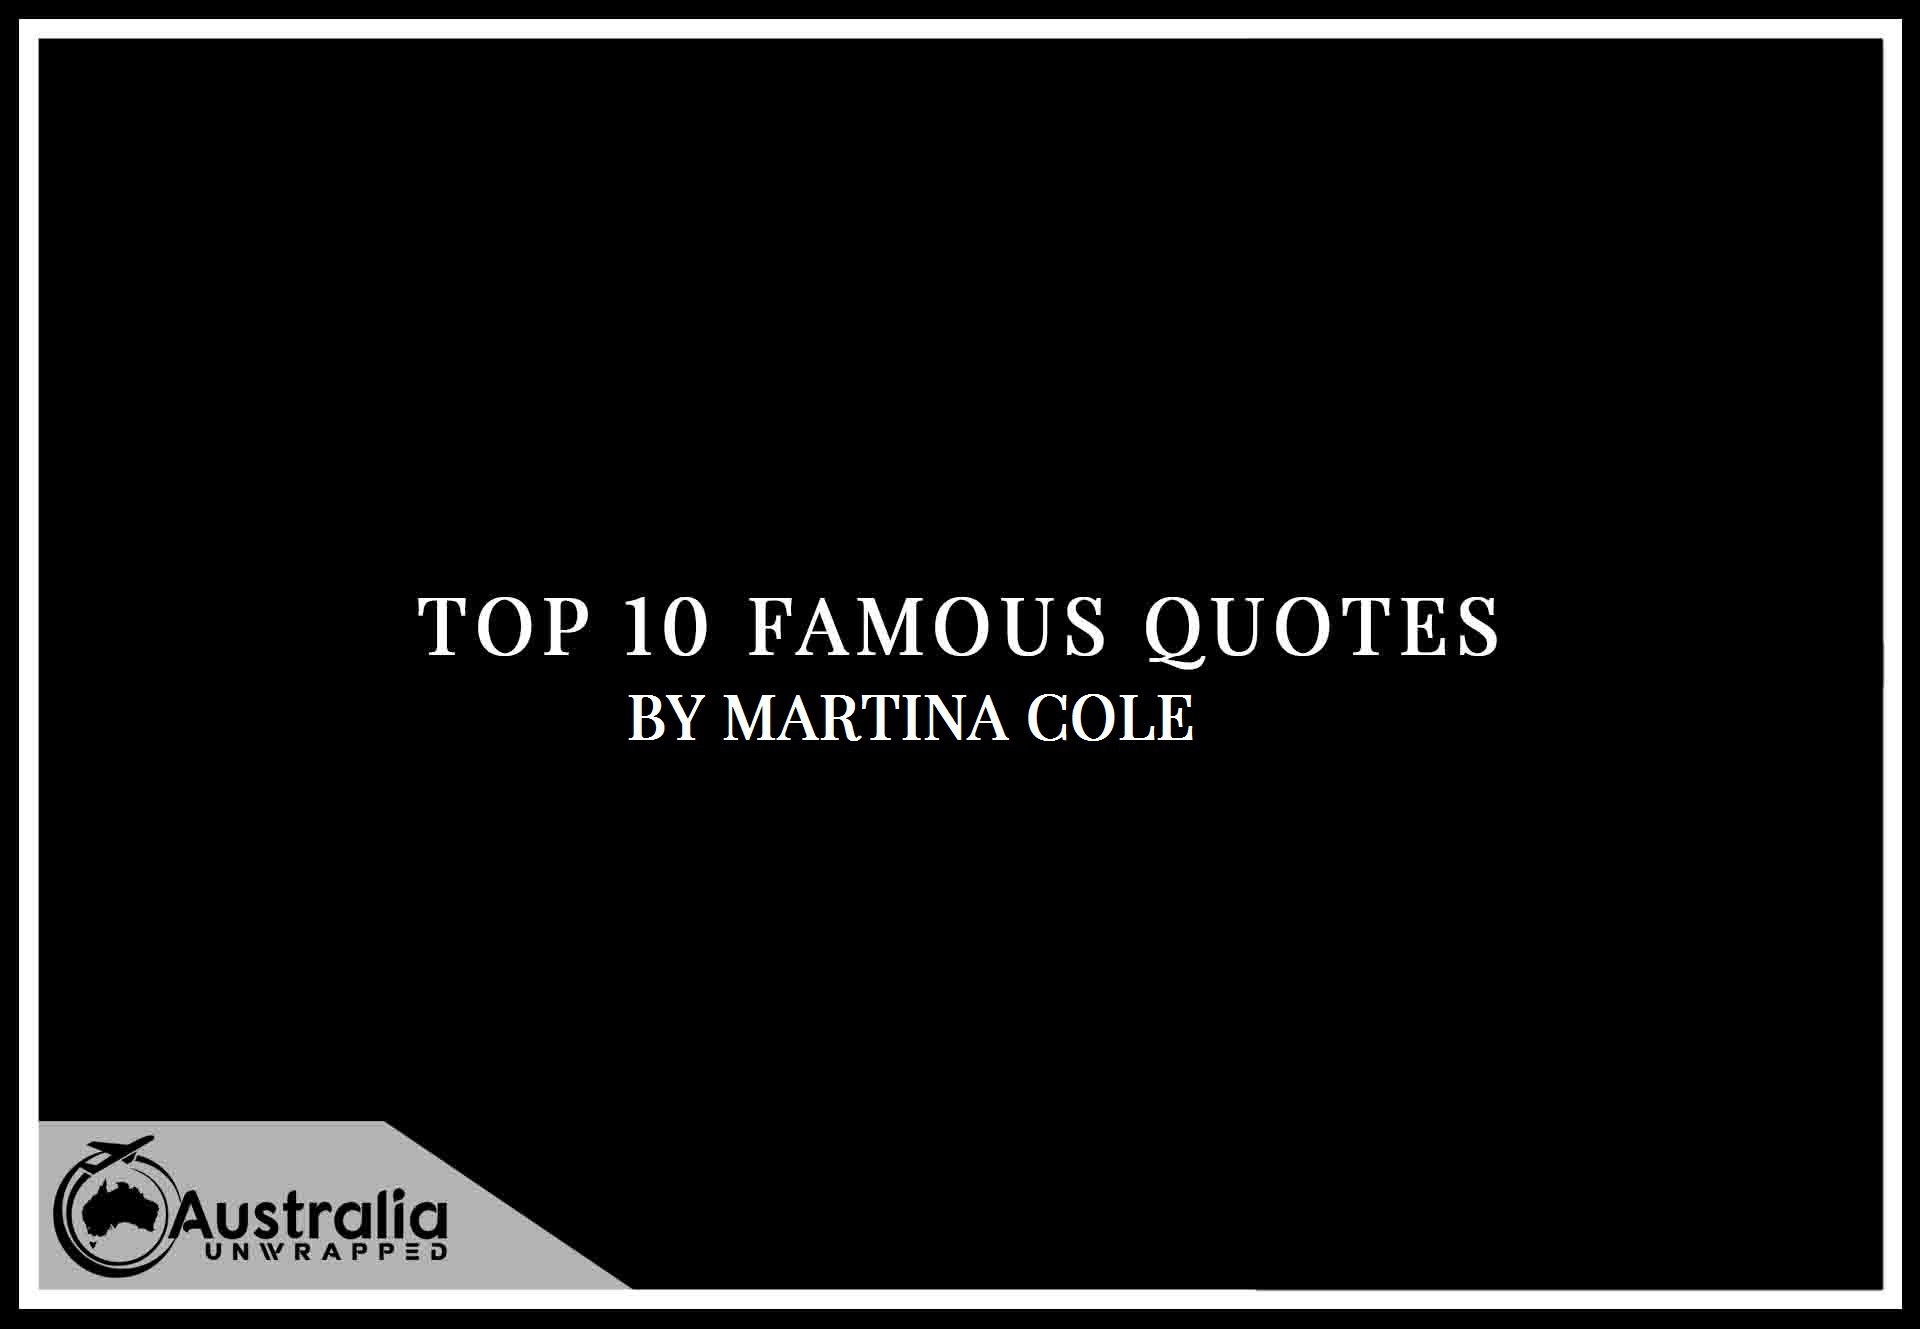 Martina Cole's Top 10 Popular and Famous Quotes